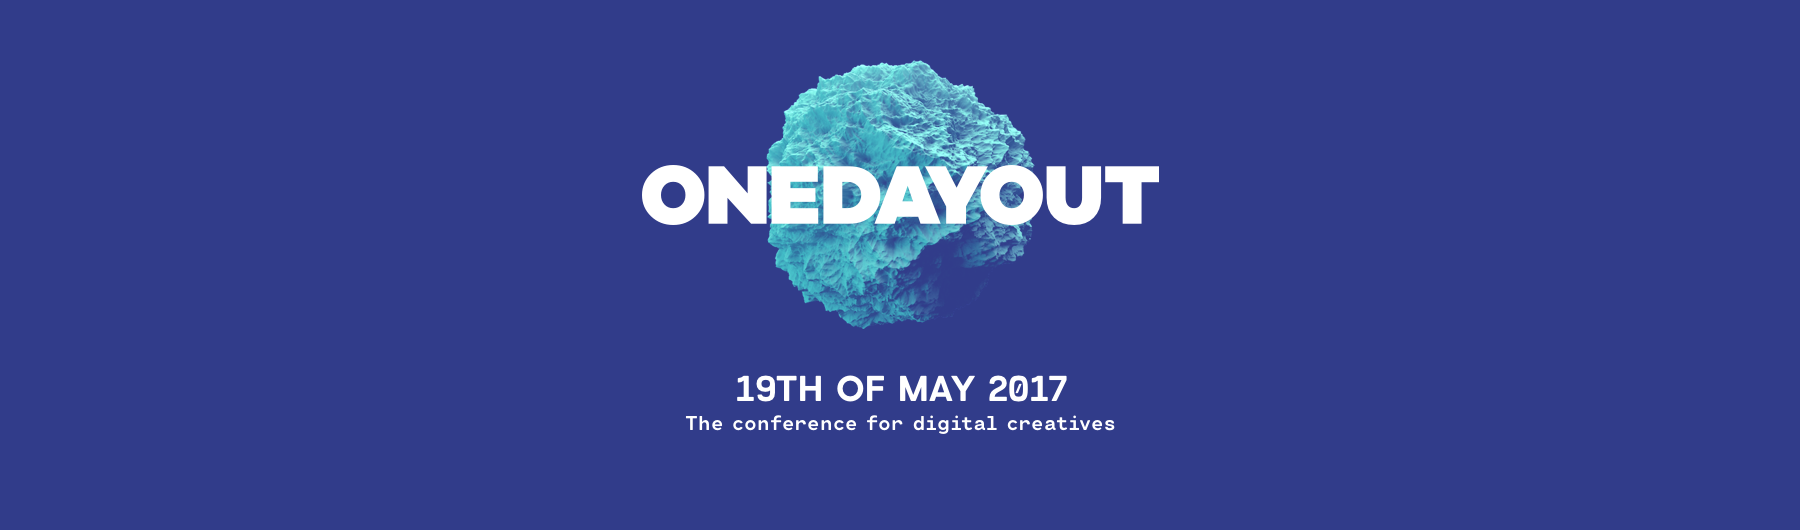 One Day Out 2017